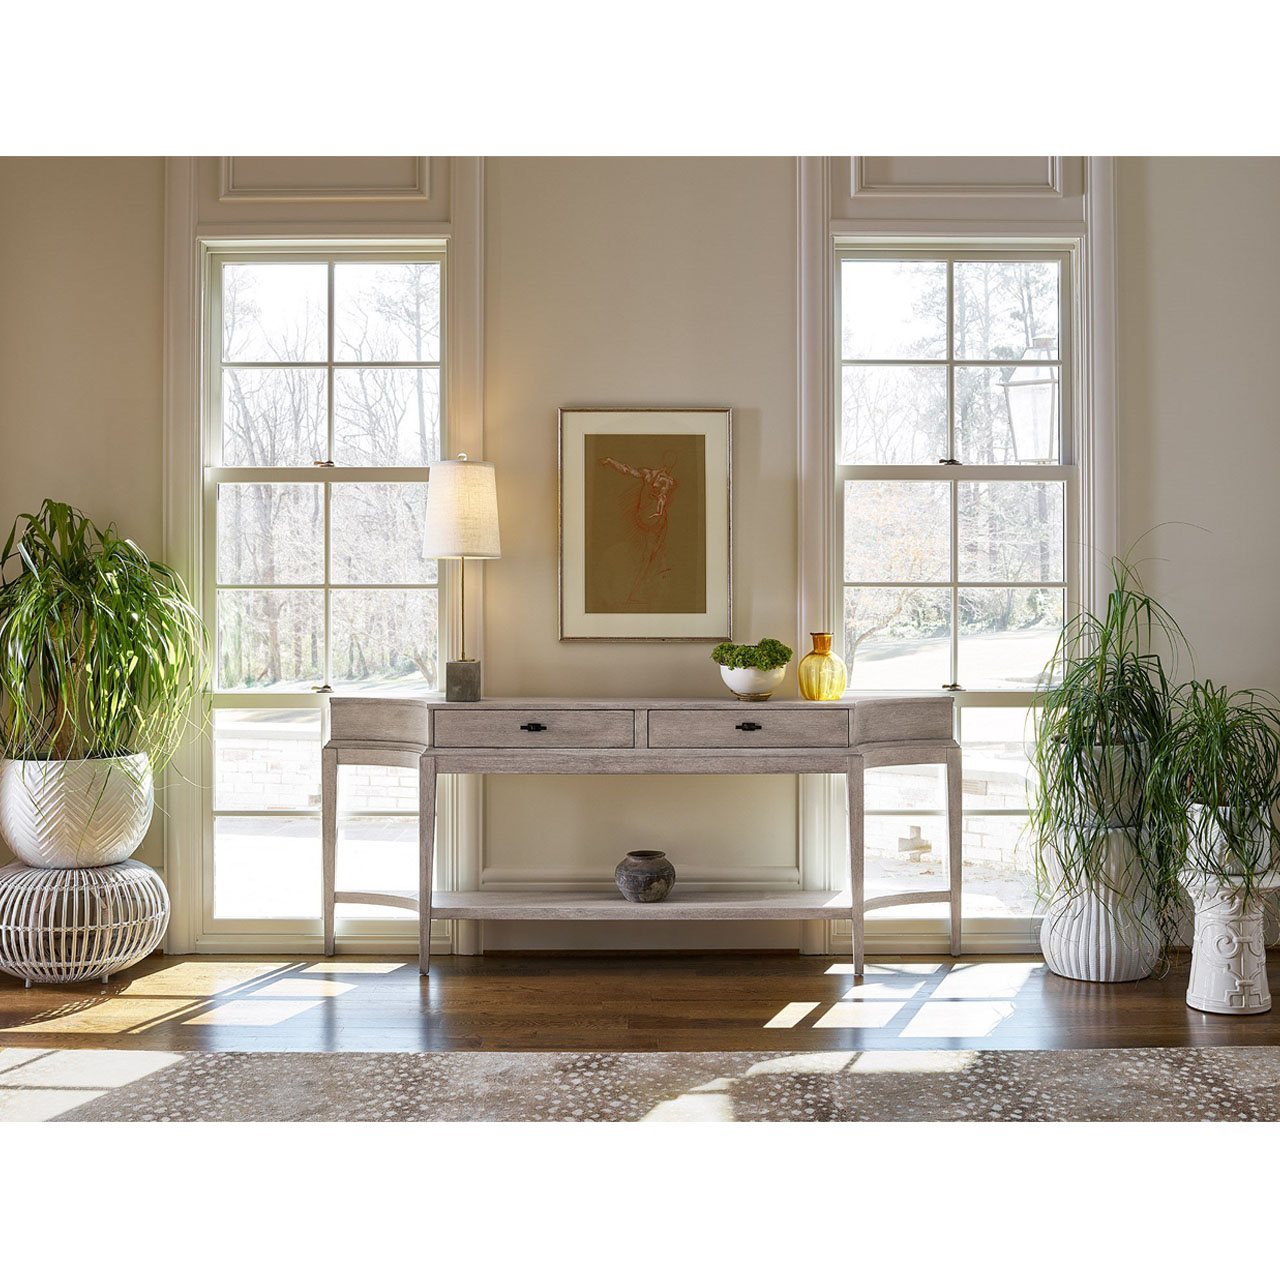 Adeline French Country Grey 2 Drawer Wood Console Table